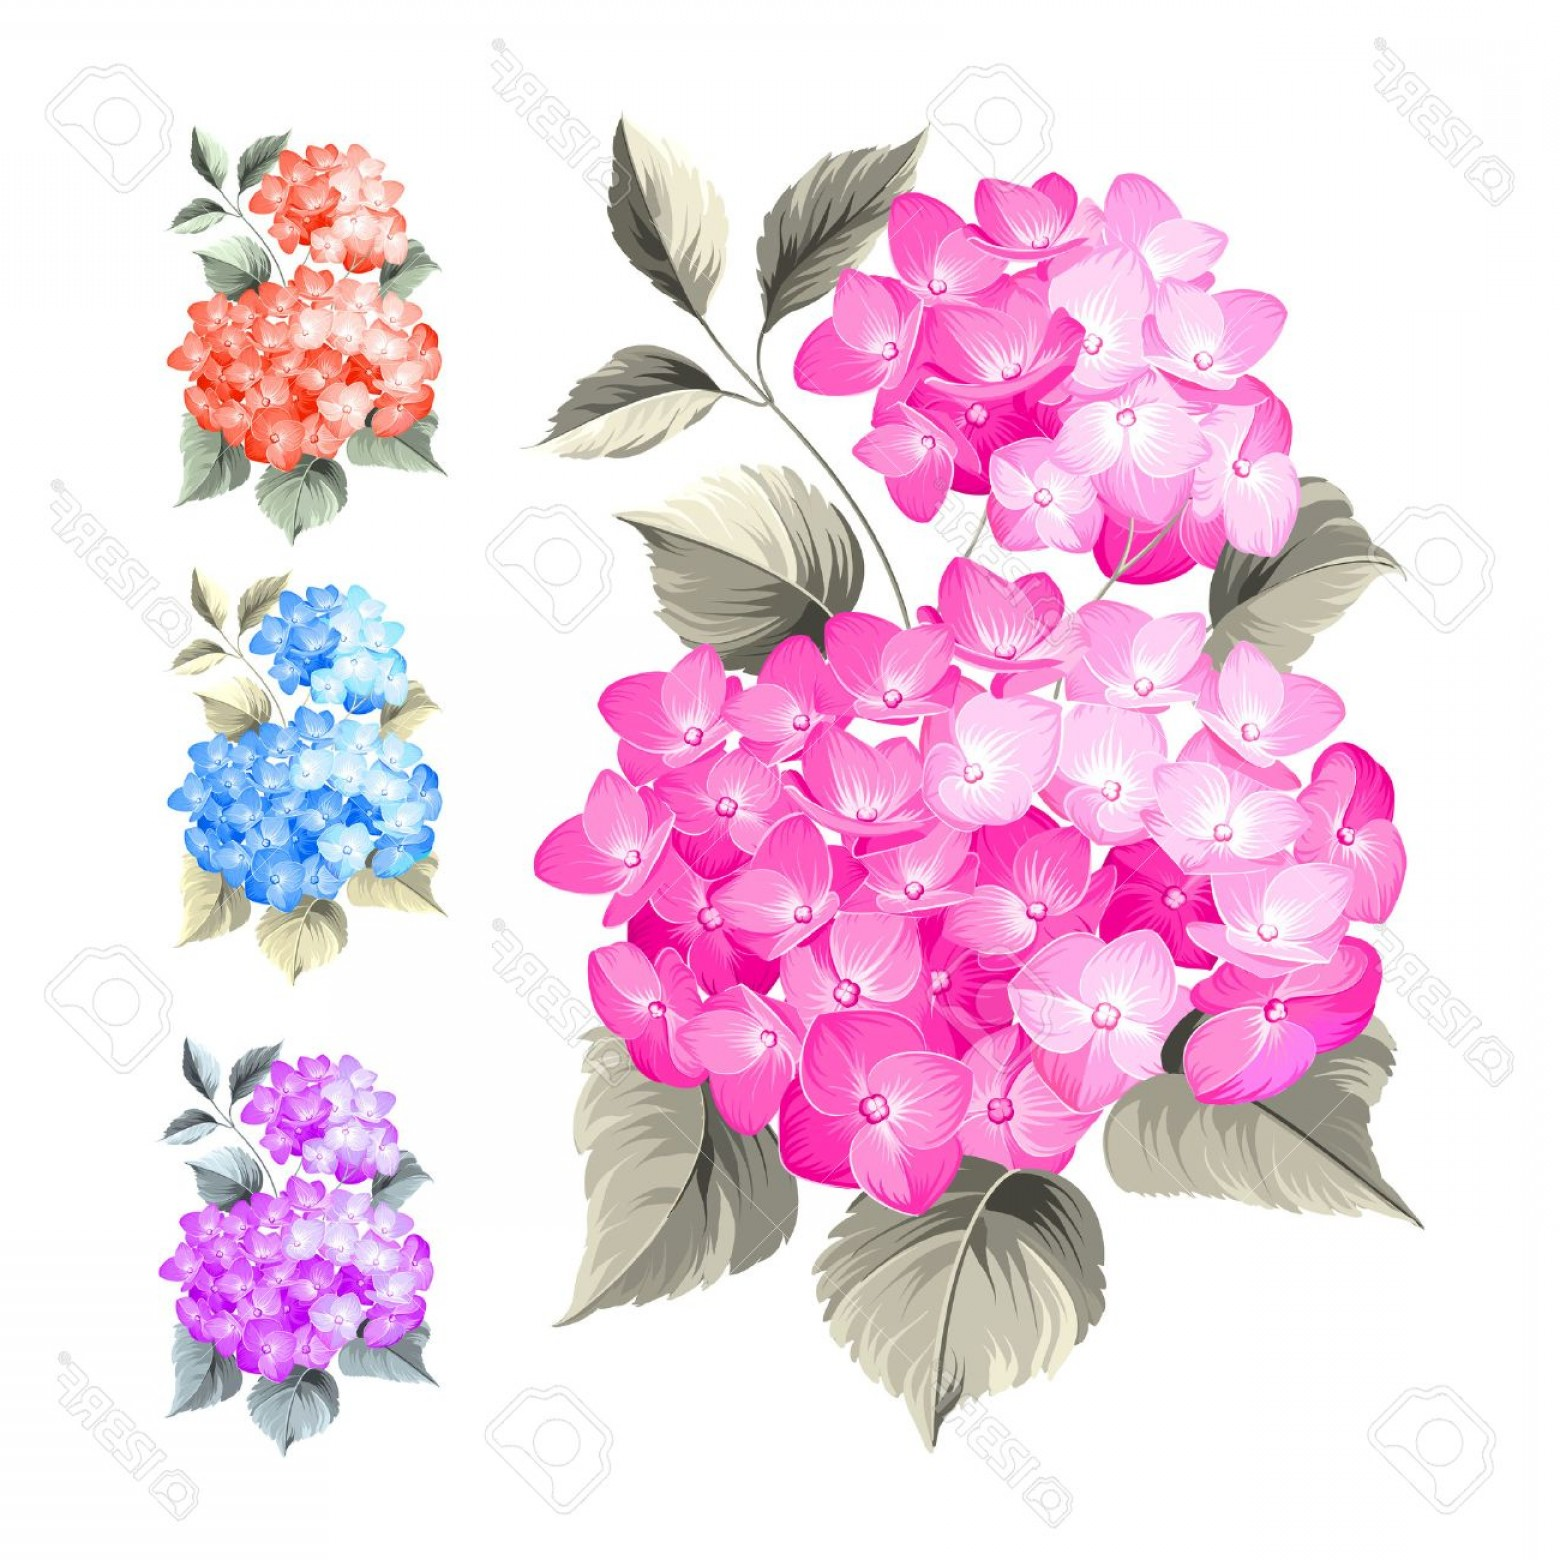 Vector Mop Flower: Photostock Vector Purple Flower Hydrangea On White Background Mop Head Hydrangea Flower Isolated Against White Beautif